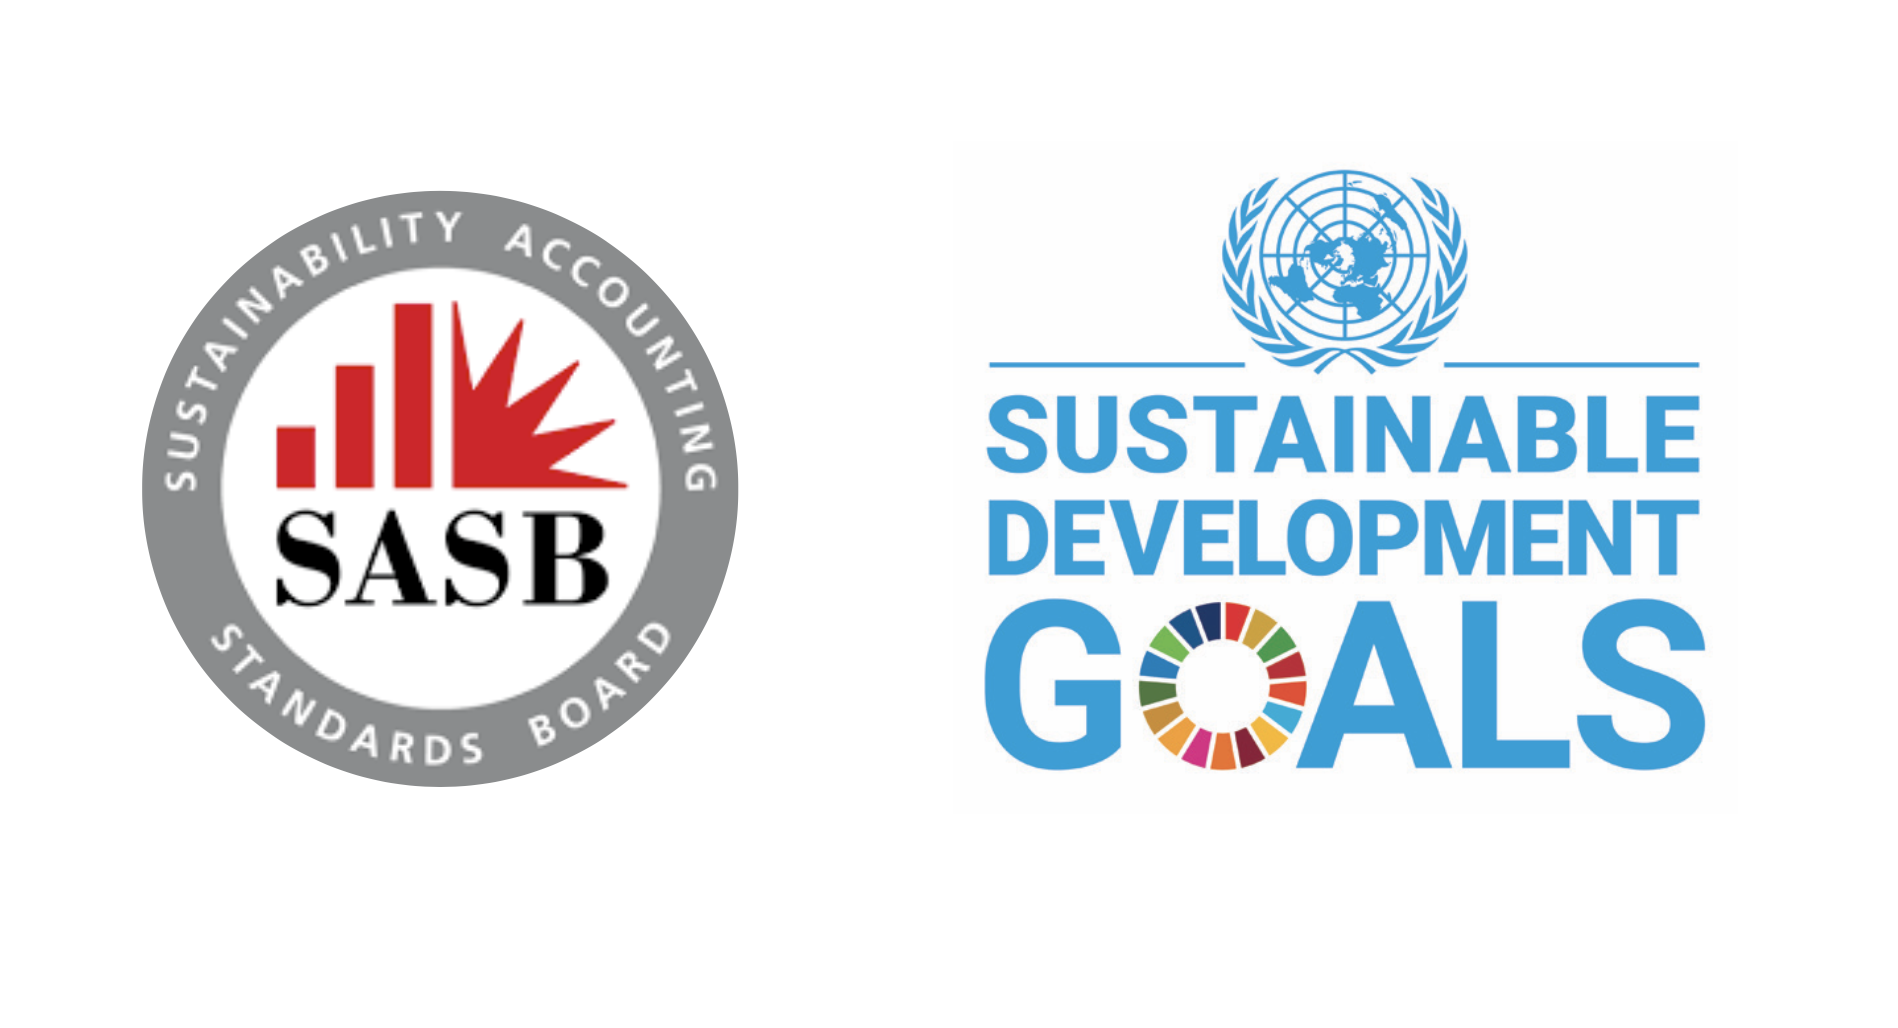 SASB and UN Sustainable Development Goals logos